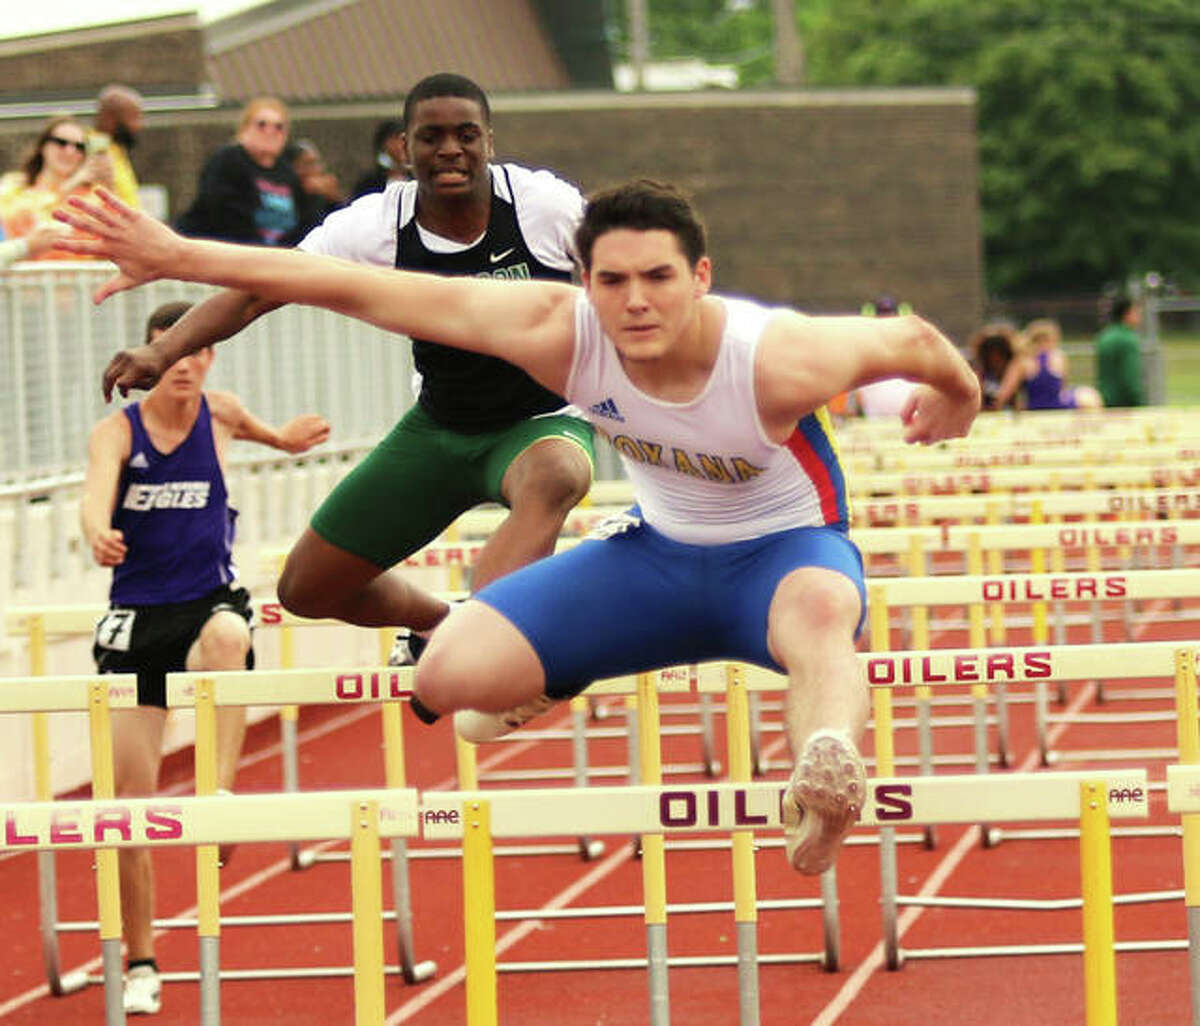 Roxana's Aidan Flener (front) clears a hurdle at the Madison County Meet on May 17 in Wood River. On Thursday at the SCC Meet in Pana, Flener was second in the 100 hurdles and third in the 300 hurdles.